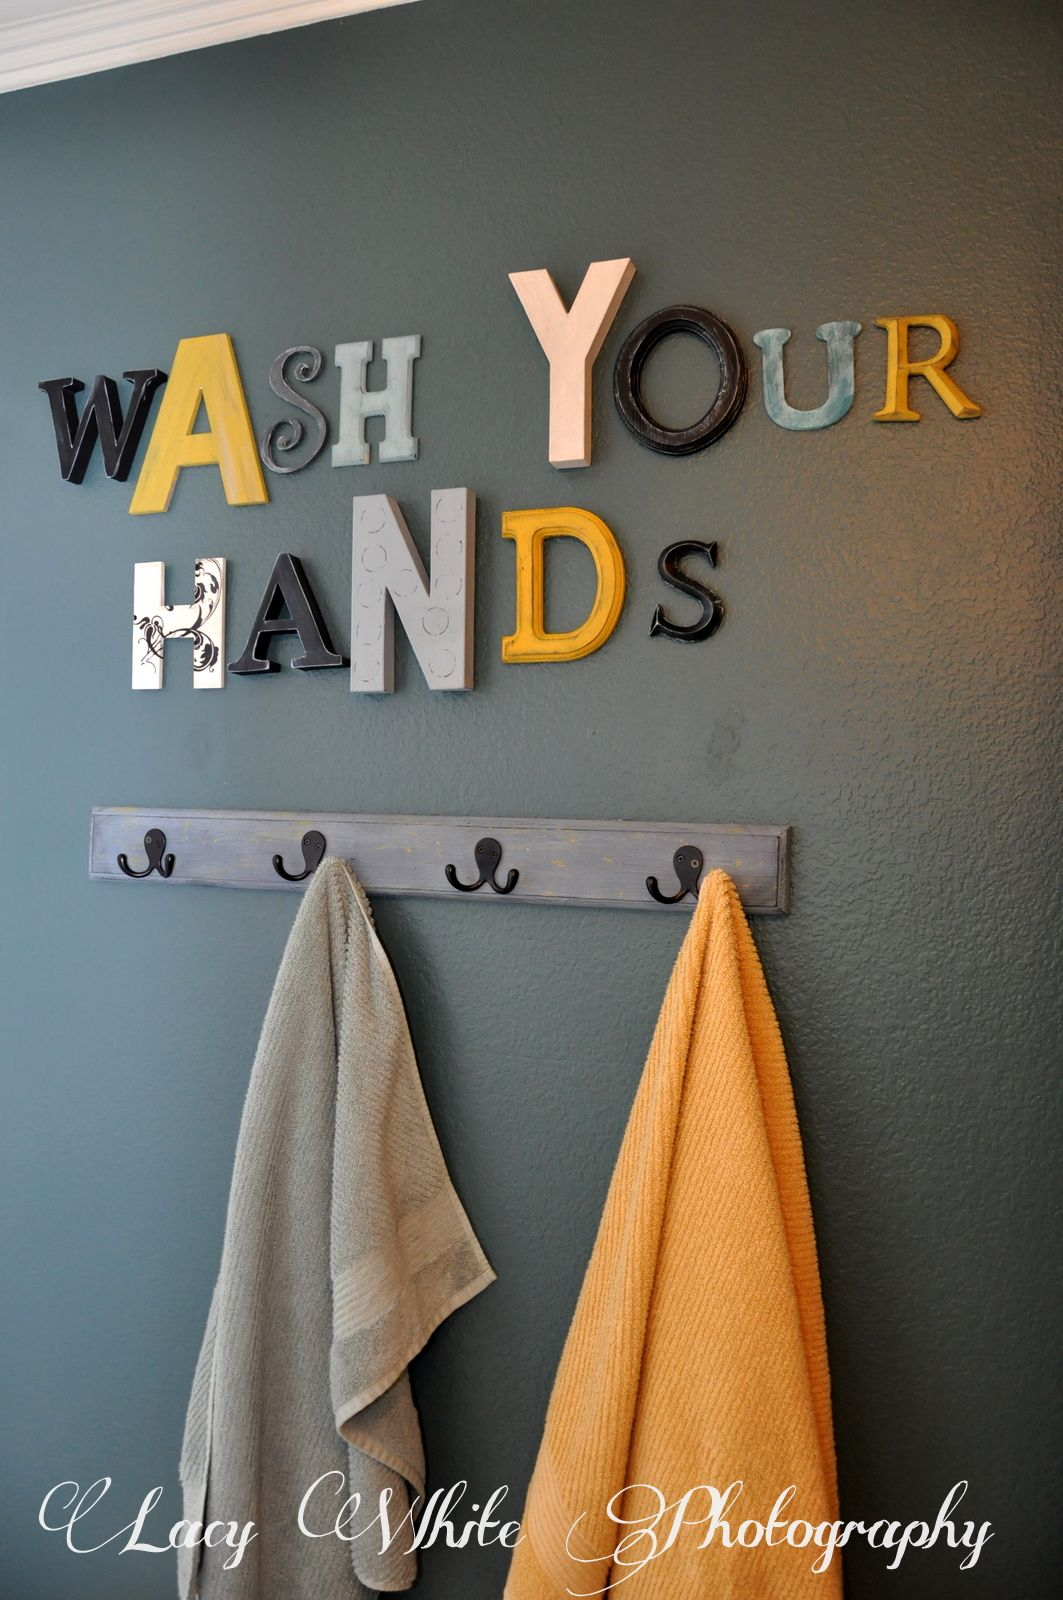 Wash your hands cute!!